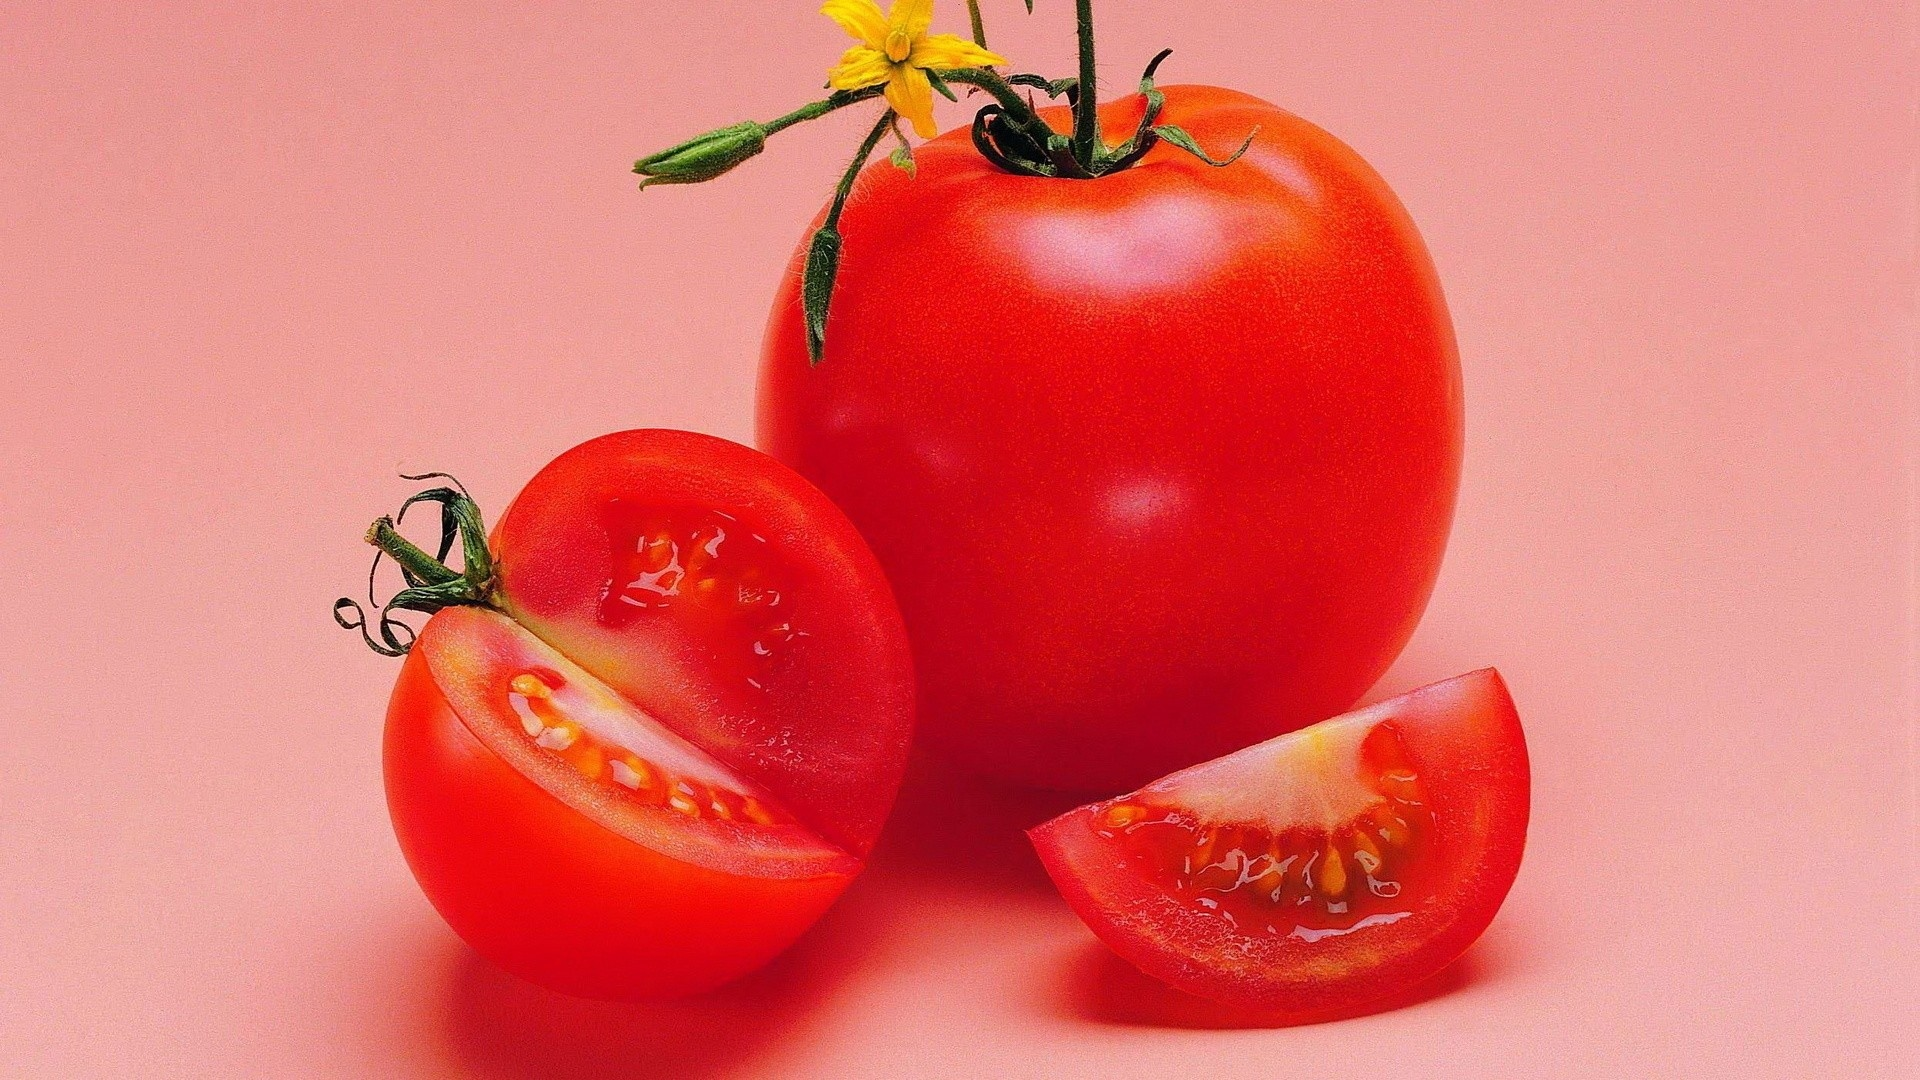 Tomatoes High Quality